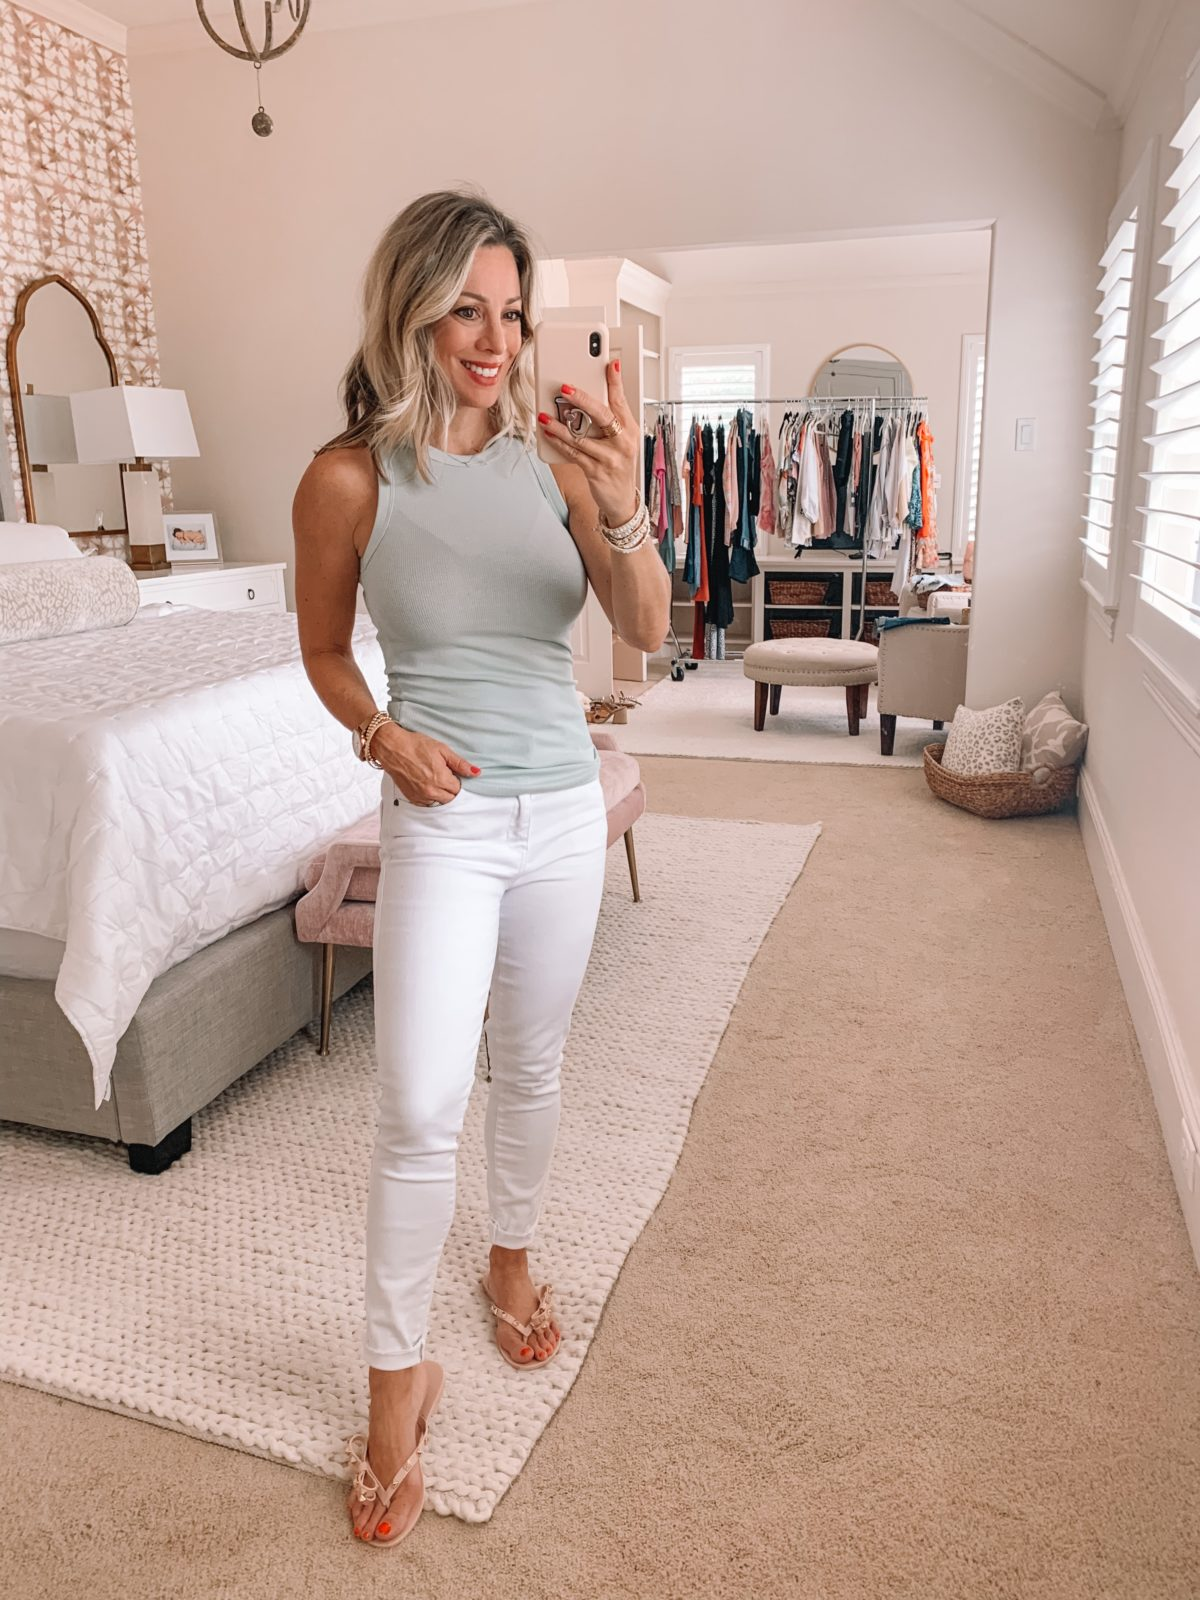 Dressing Room Finds Nordstrom and Target, Mint Tank, White Jeans, Studded Bow Sandals